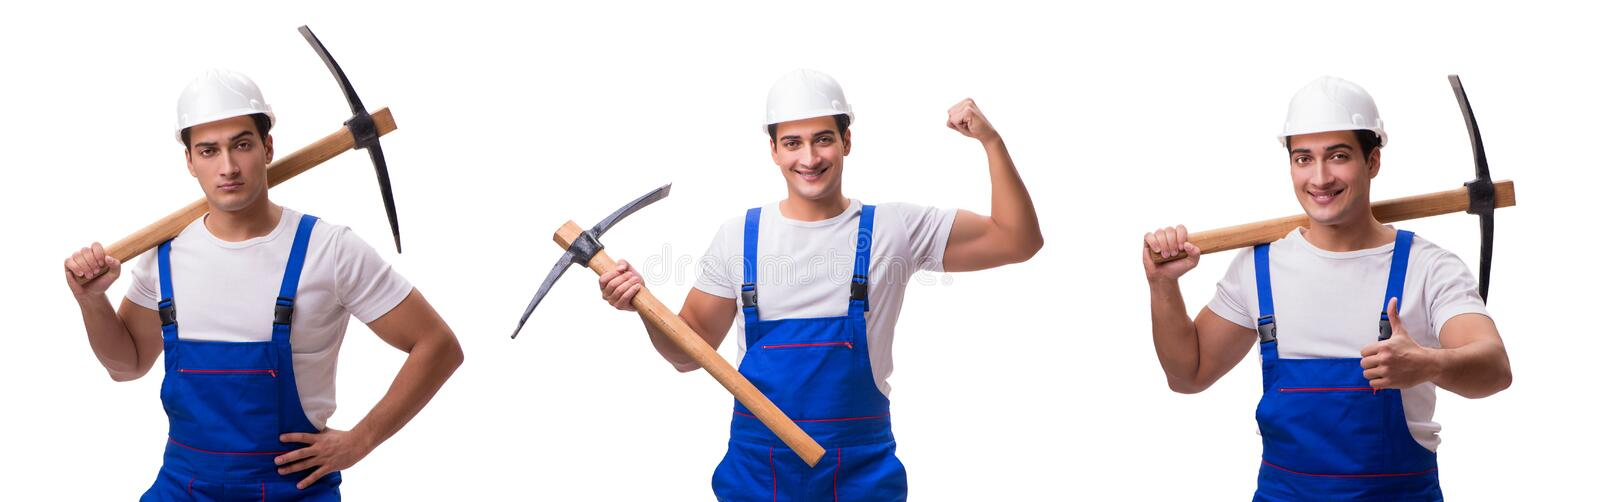 The man with axe on the white. Man with axe on the white stock photography